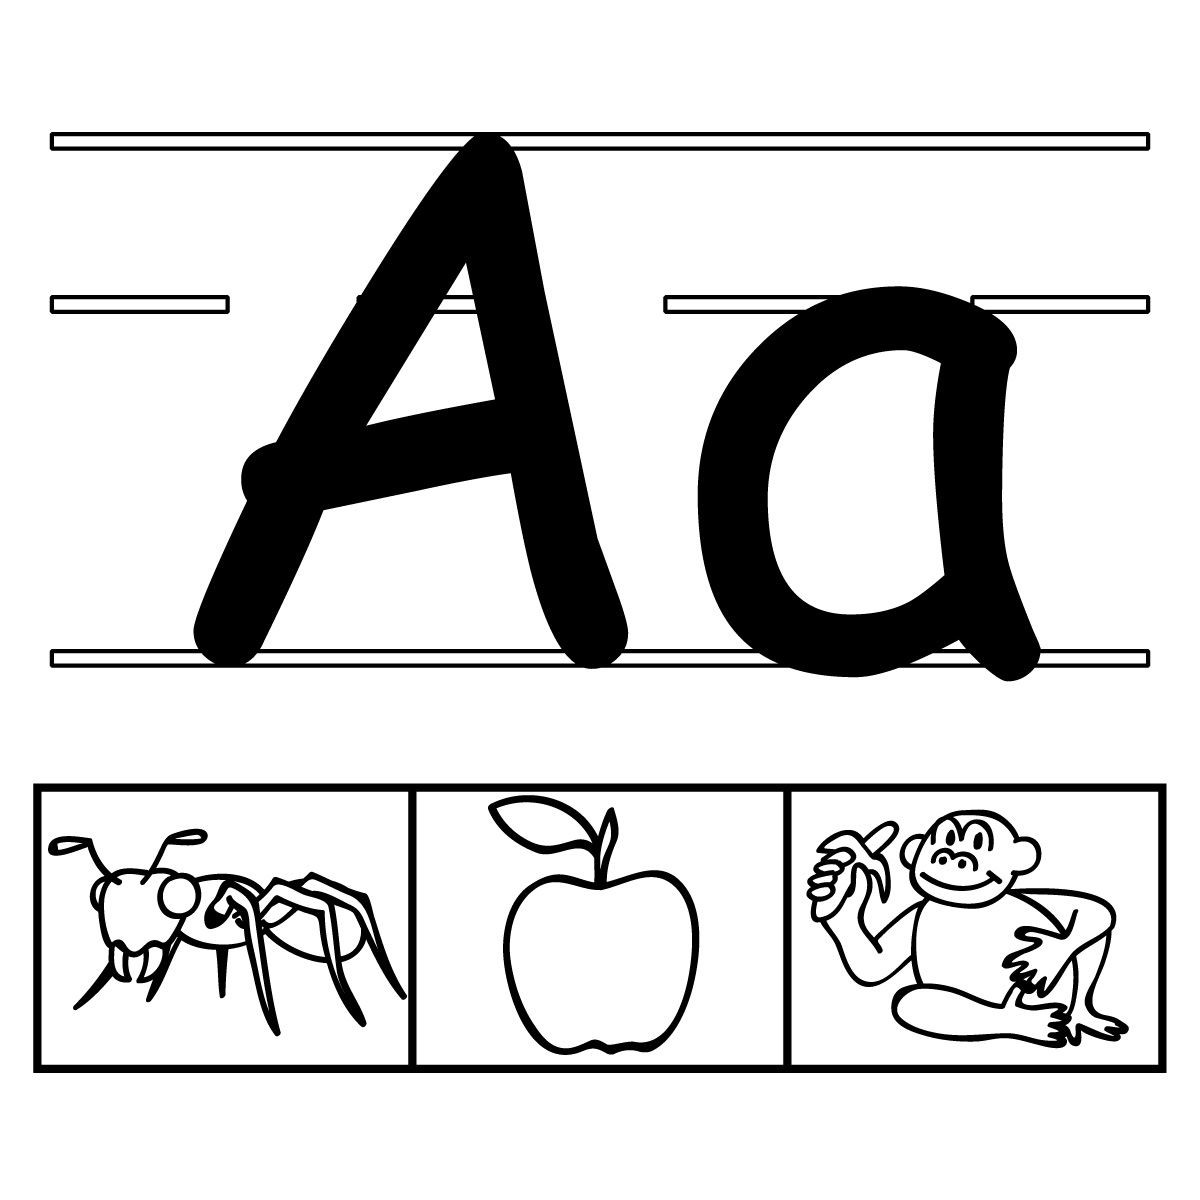 alphabet printables with 3 images for each letter (scroll down for all the letters)